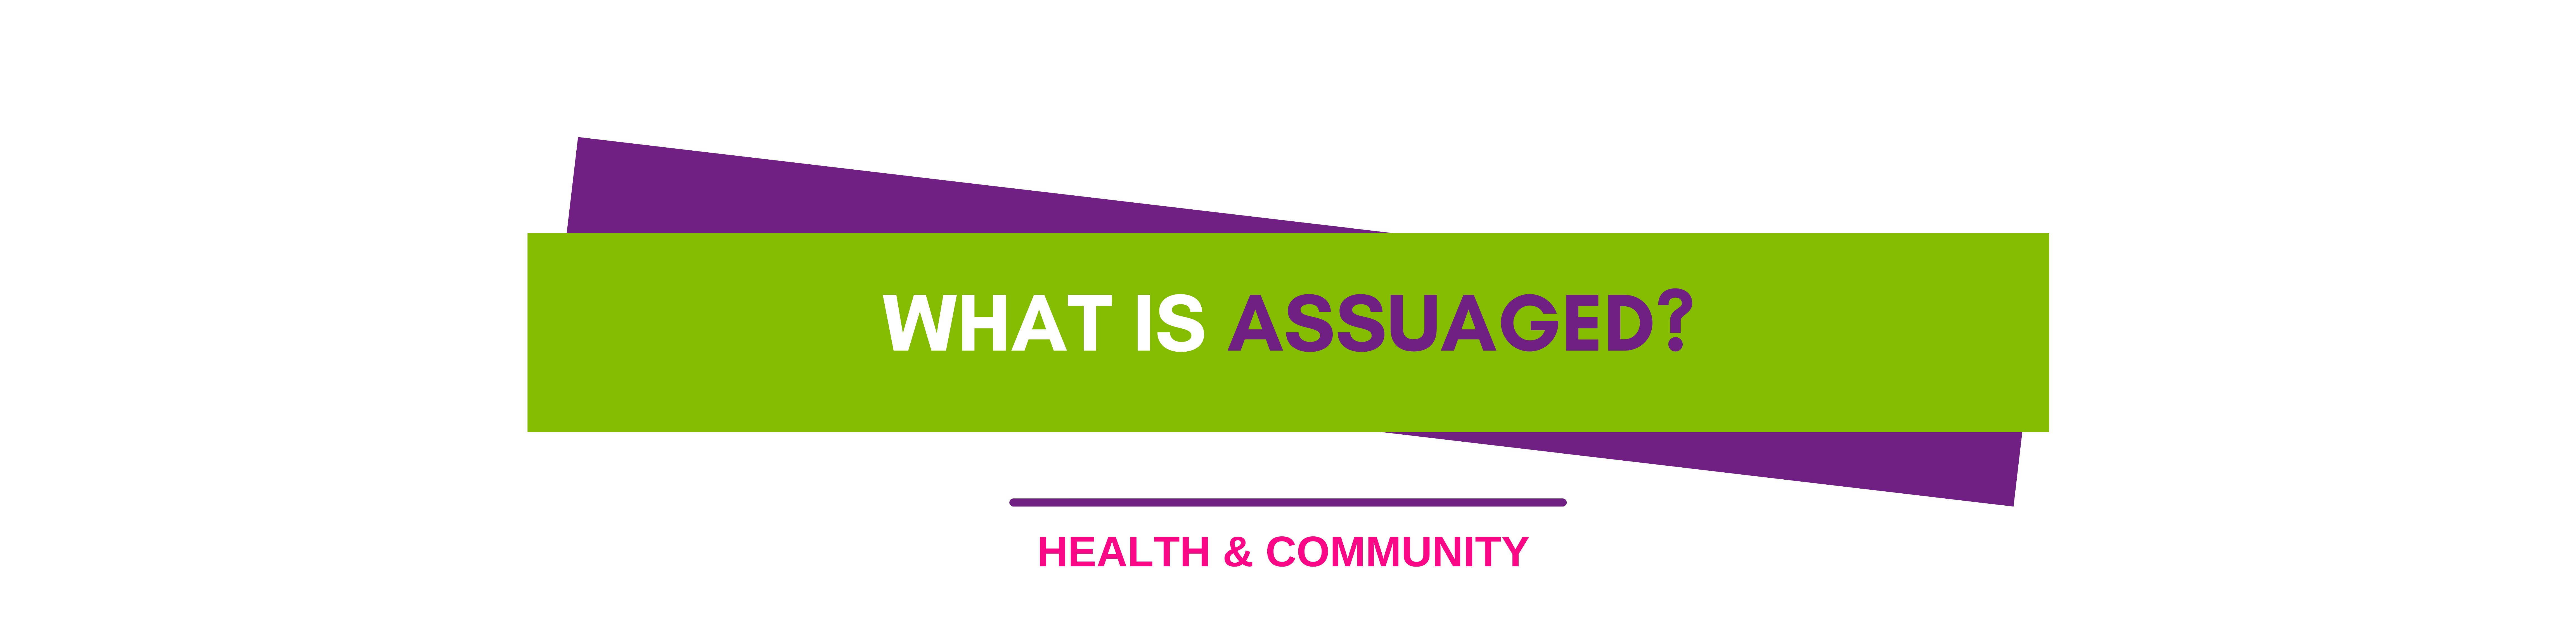 Assuaged-Home-Page-Be-Your-Healthiest-What-Is-Assuaged